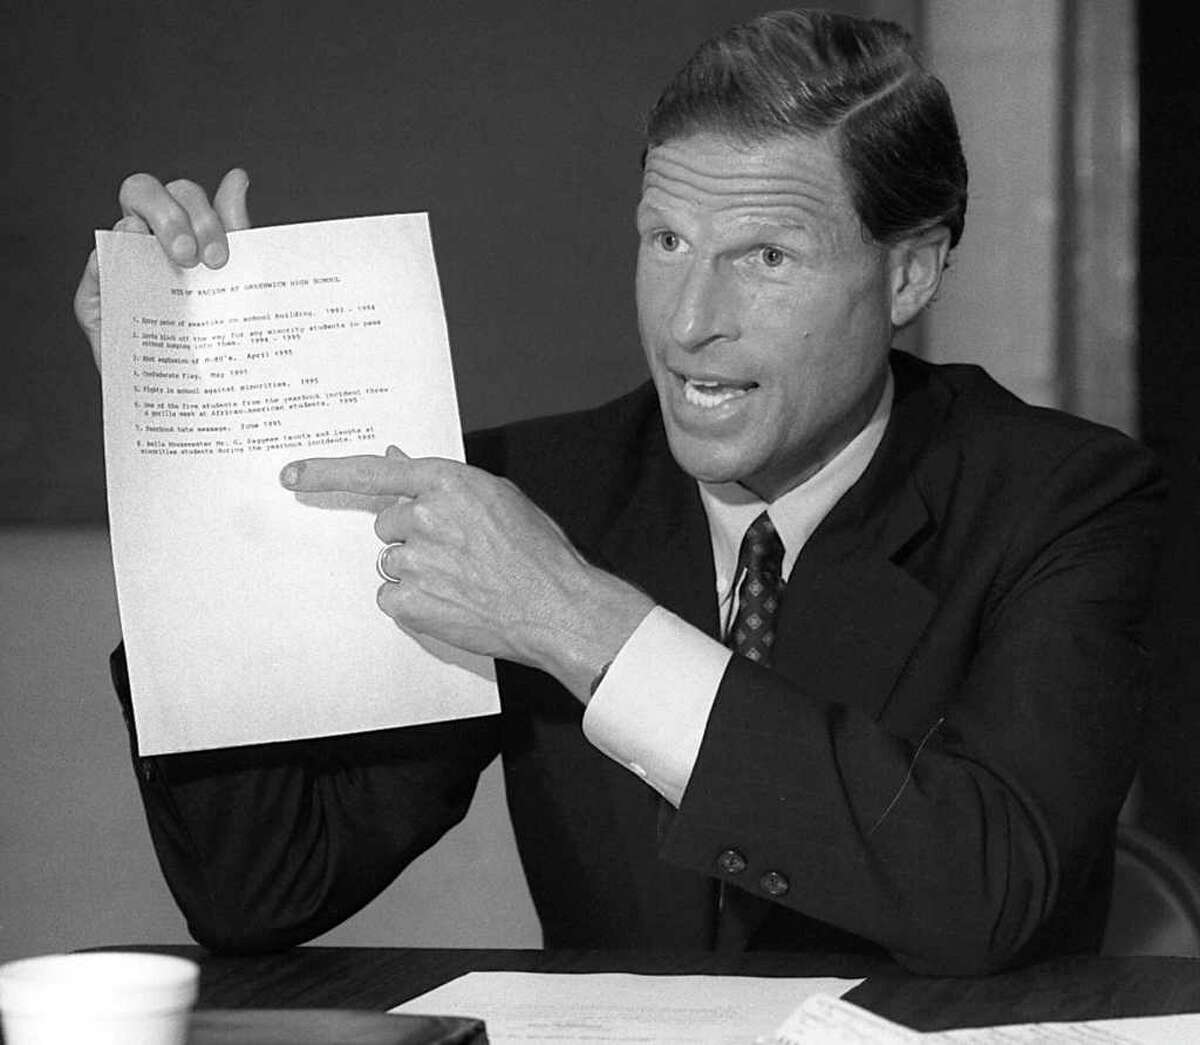 Connecticut Attorney General Richard Blumenthal points to a list of recent racial incidents at Greenwich High School during a meeting organized by Joyce McKenzie of the Armstrong Court housing complex in Greenwich in July 1995. Blumenthal was handed the list by someone at the meeting and was pointing at it in agreement that there seemed to be a problem at the school.